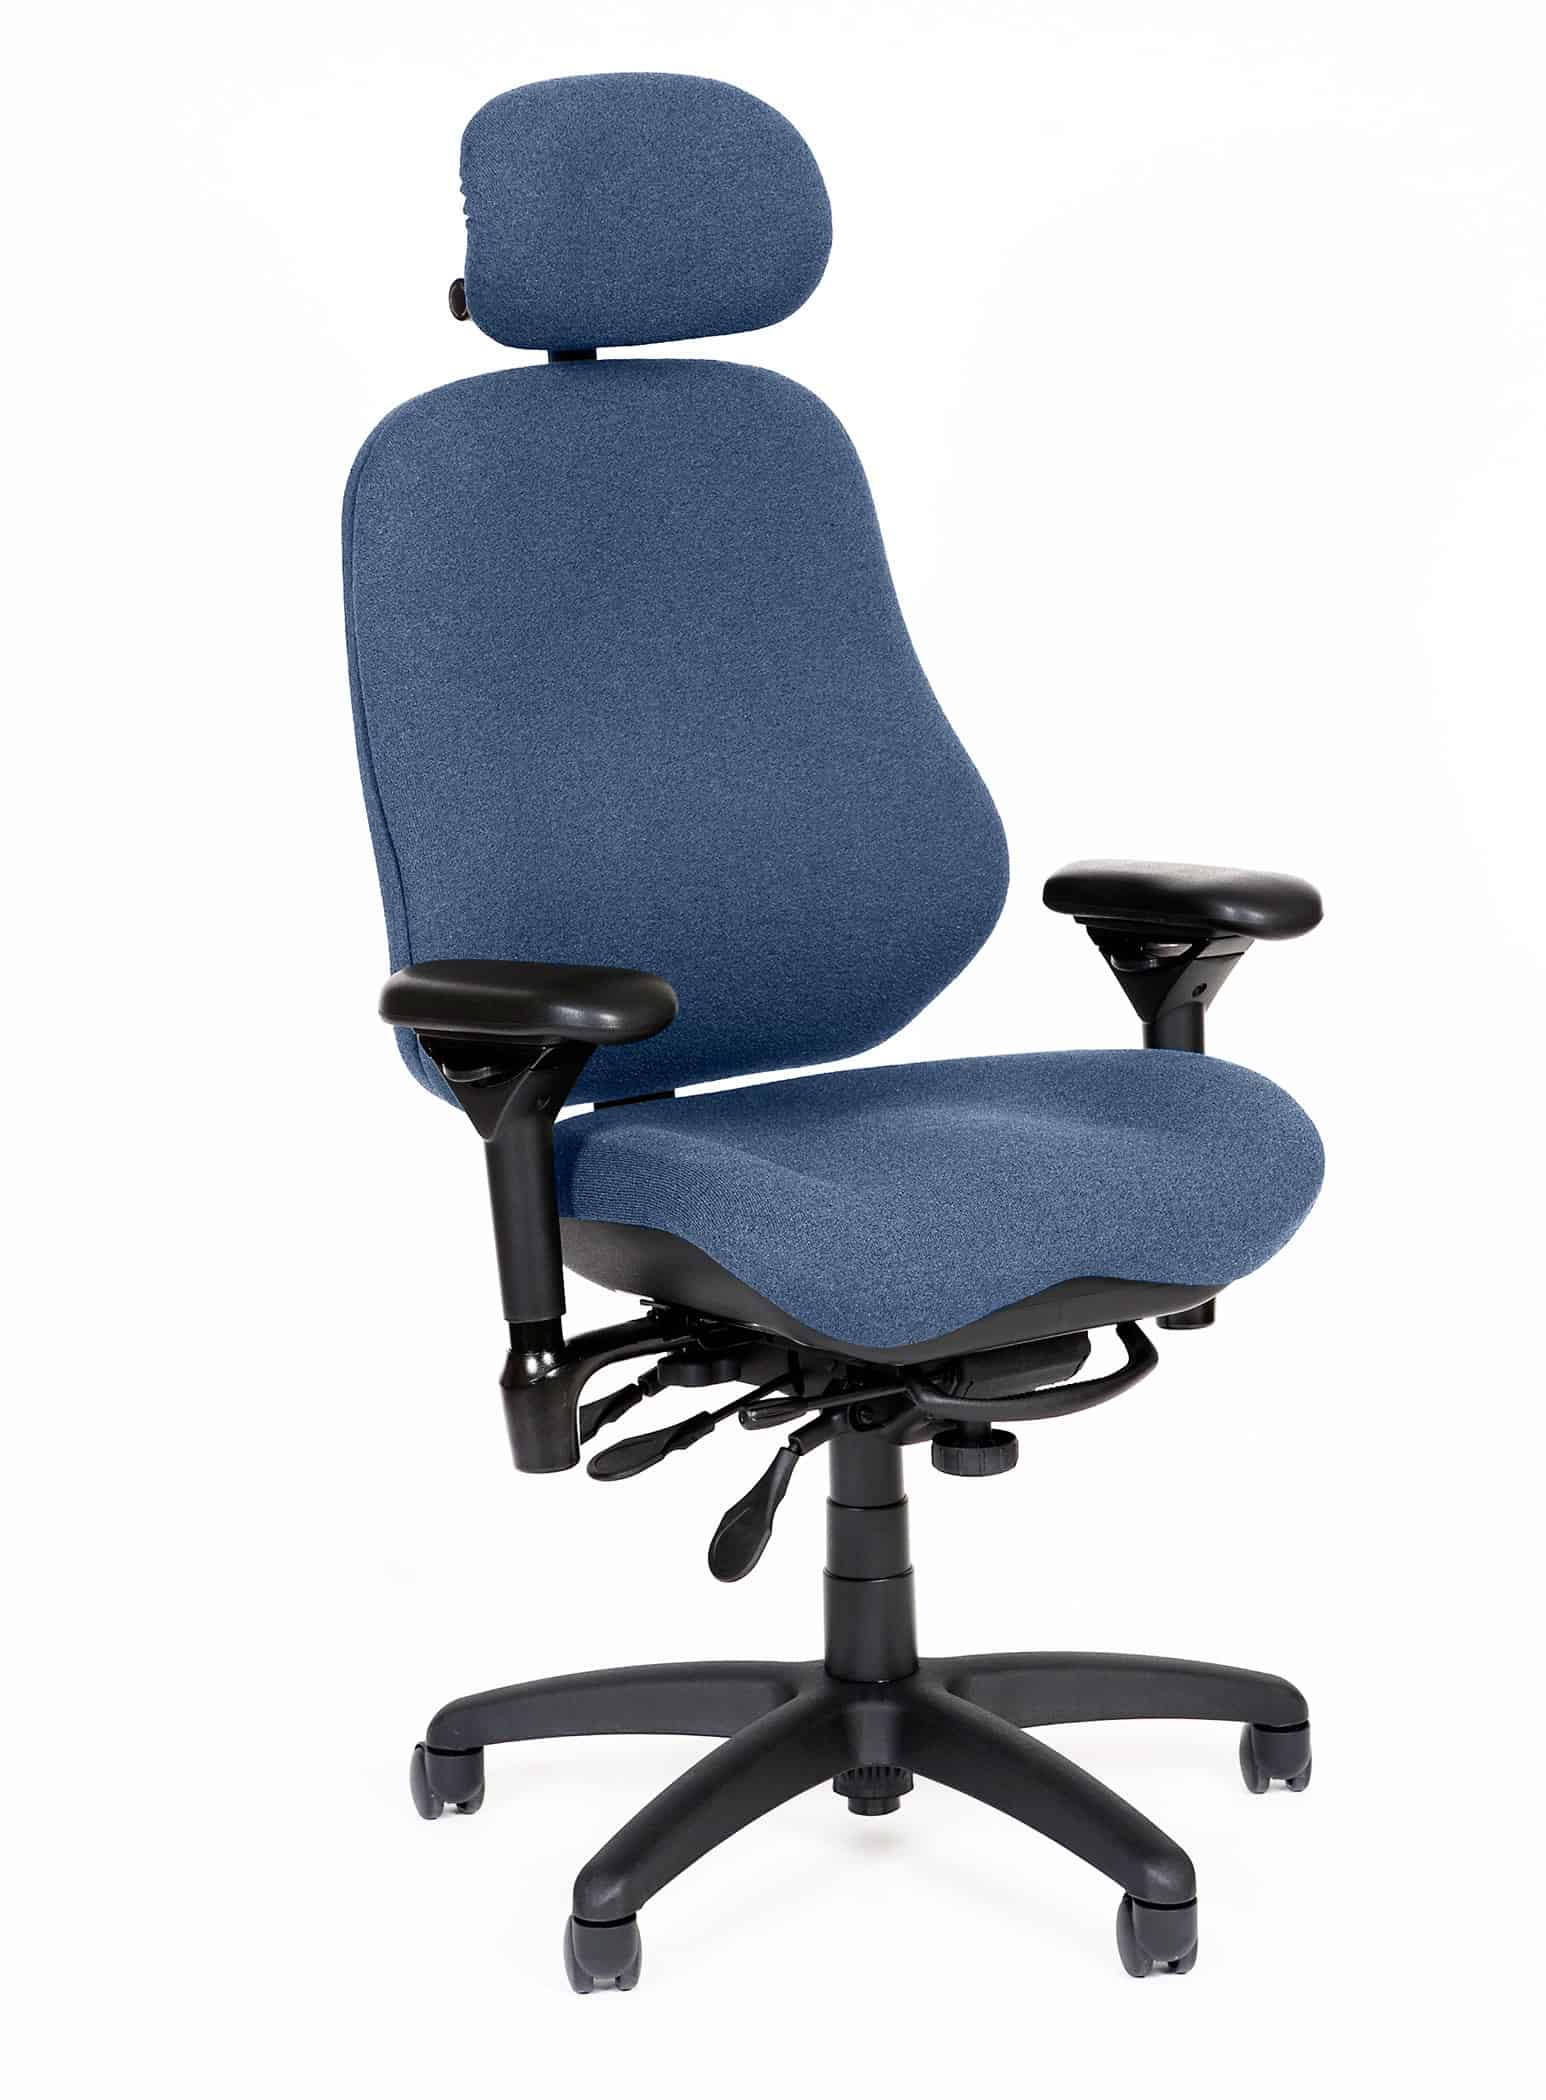 24 Hour Office Chairs Bodybilt Chairs 24 7 Control Room 911 Emergency Call Centers 24 7